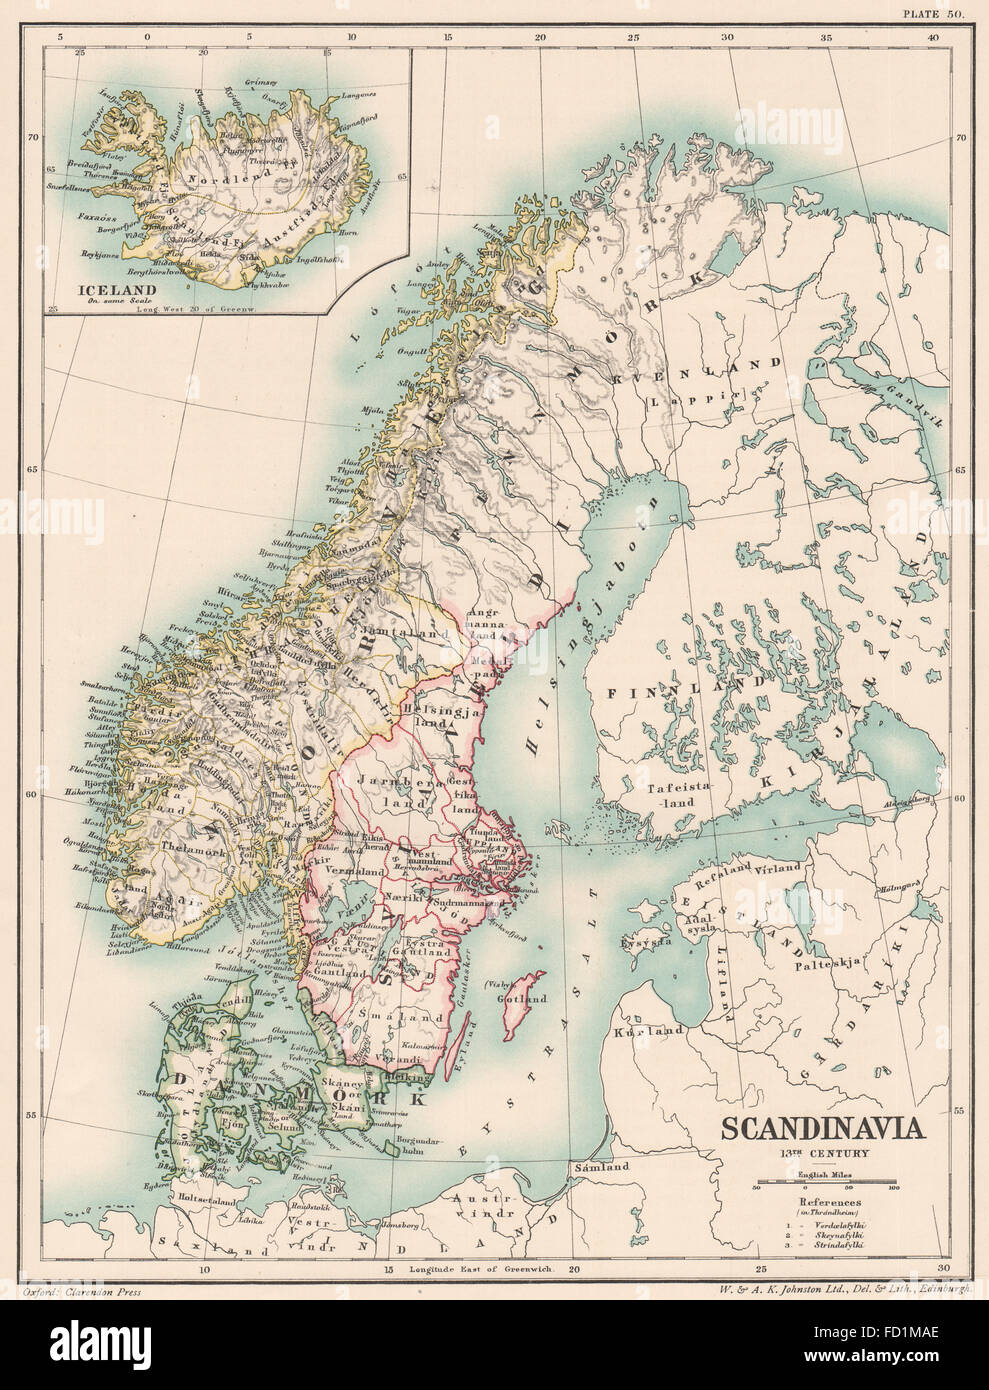 Antique Map Of Iceland Stock Photos & Antique Map Of Iceland Stock ...